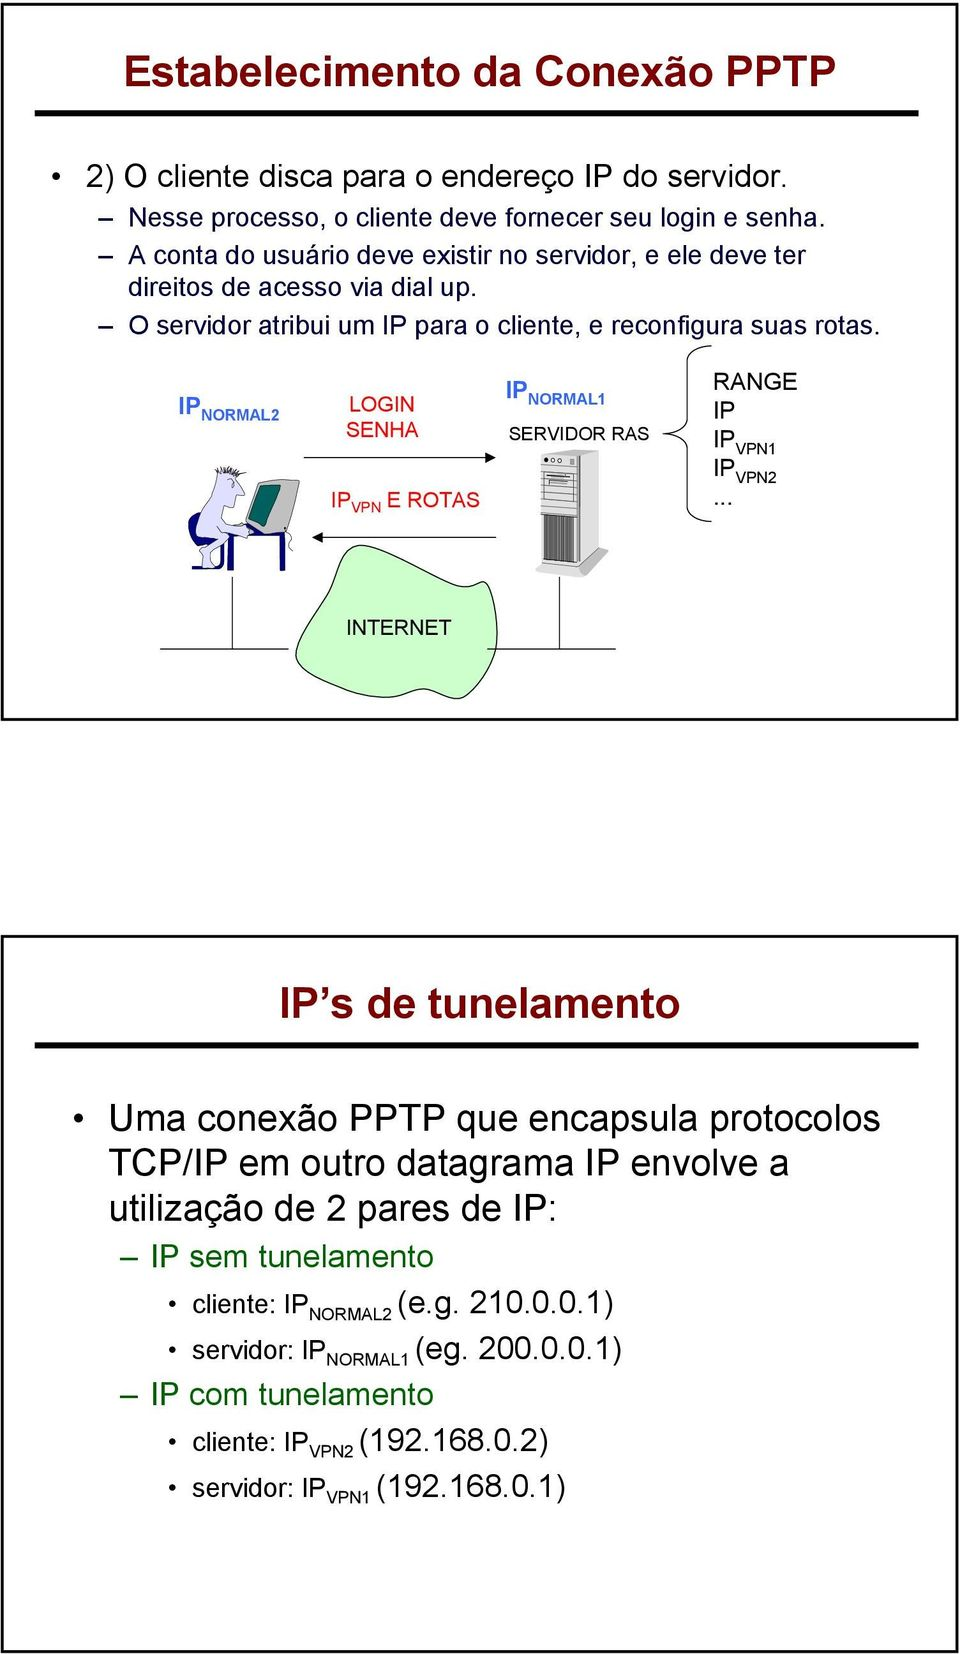 IP NORMAL2 LOGIN SENHA IP VPN E ROTAS IP NORMAL1 SERVIDOR RAS RANGE IP IP VPN1 IP VPN2.